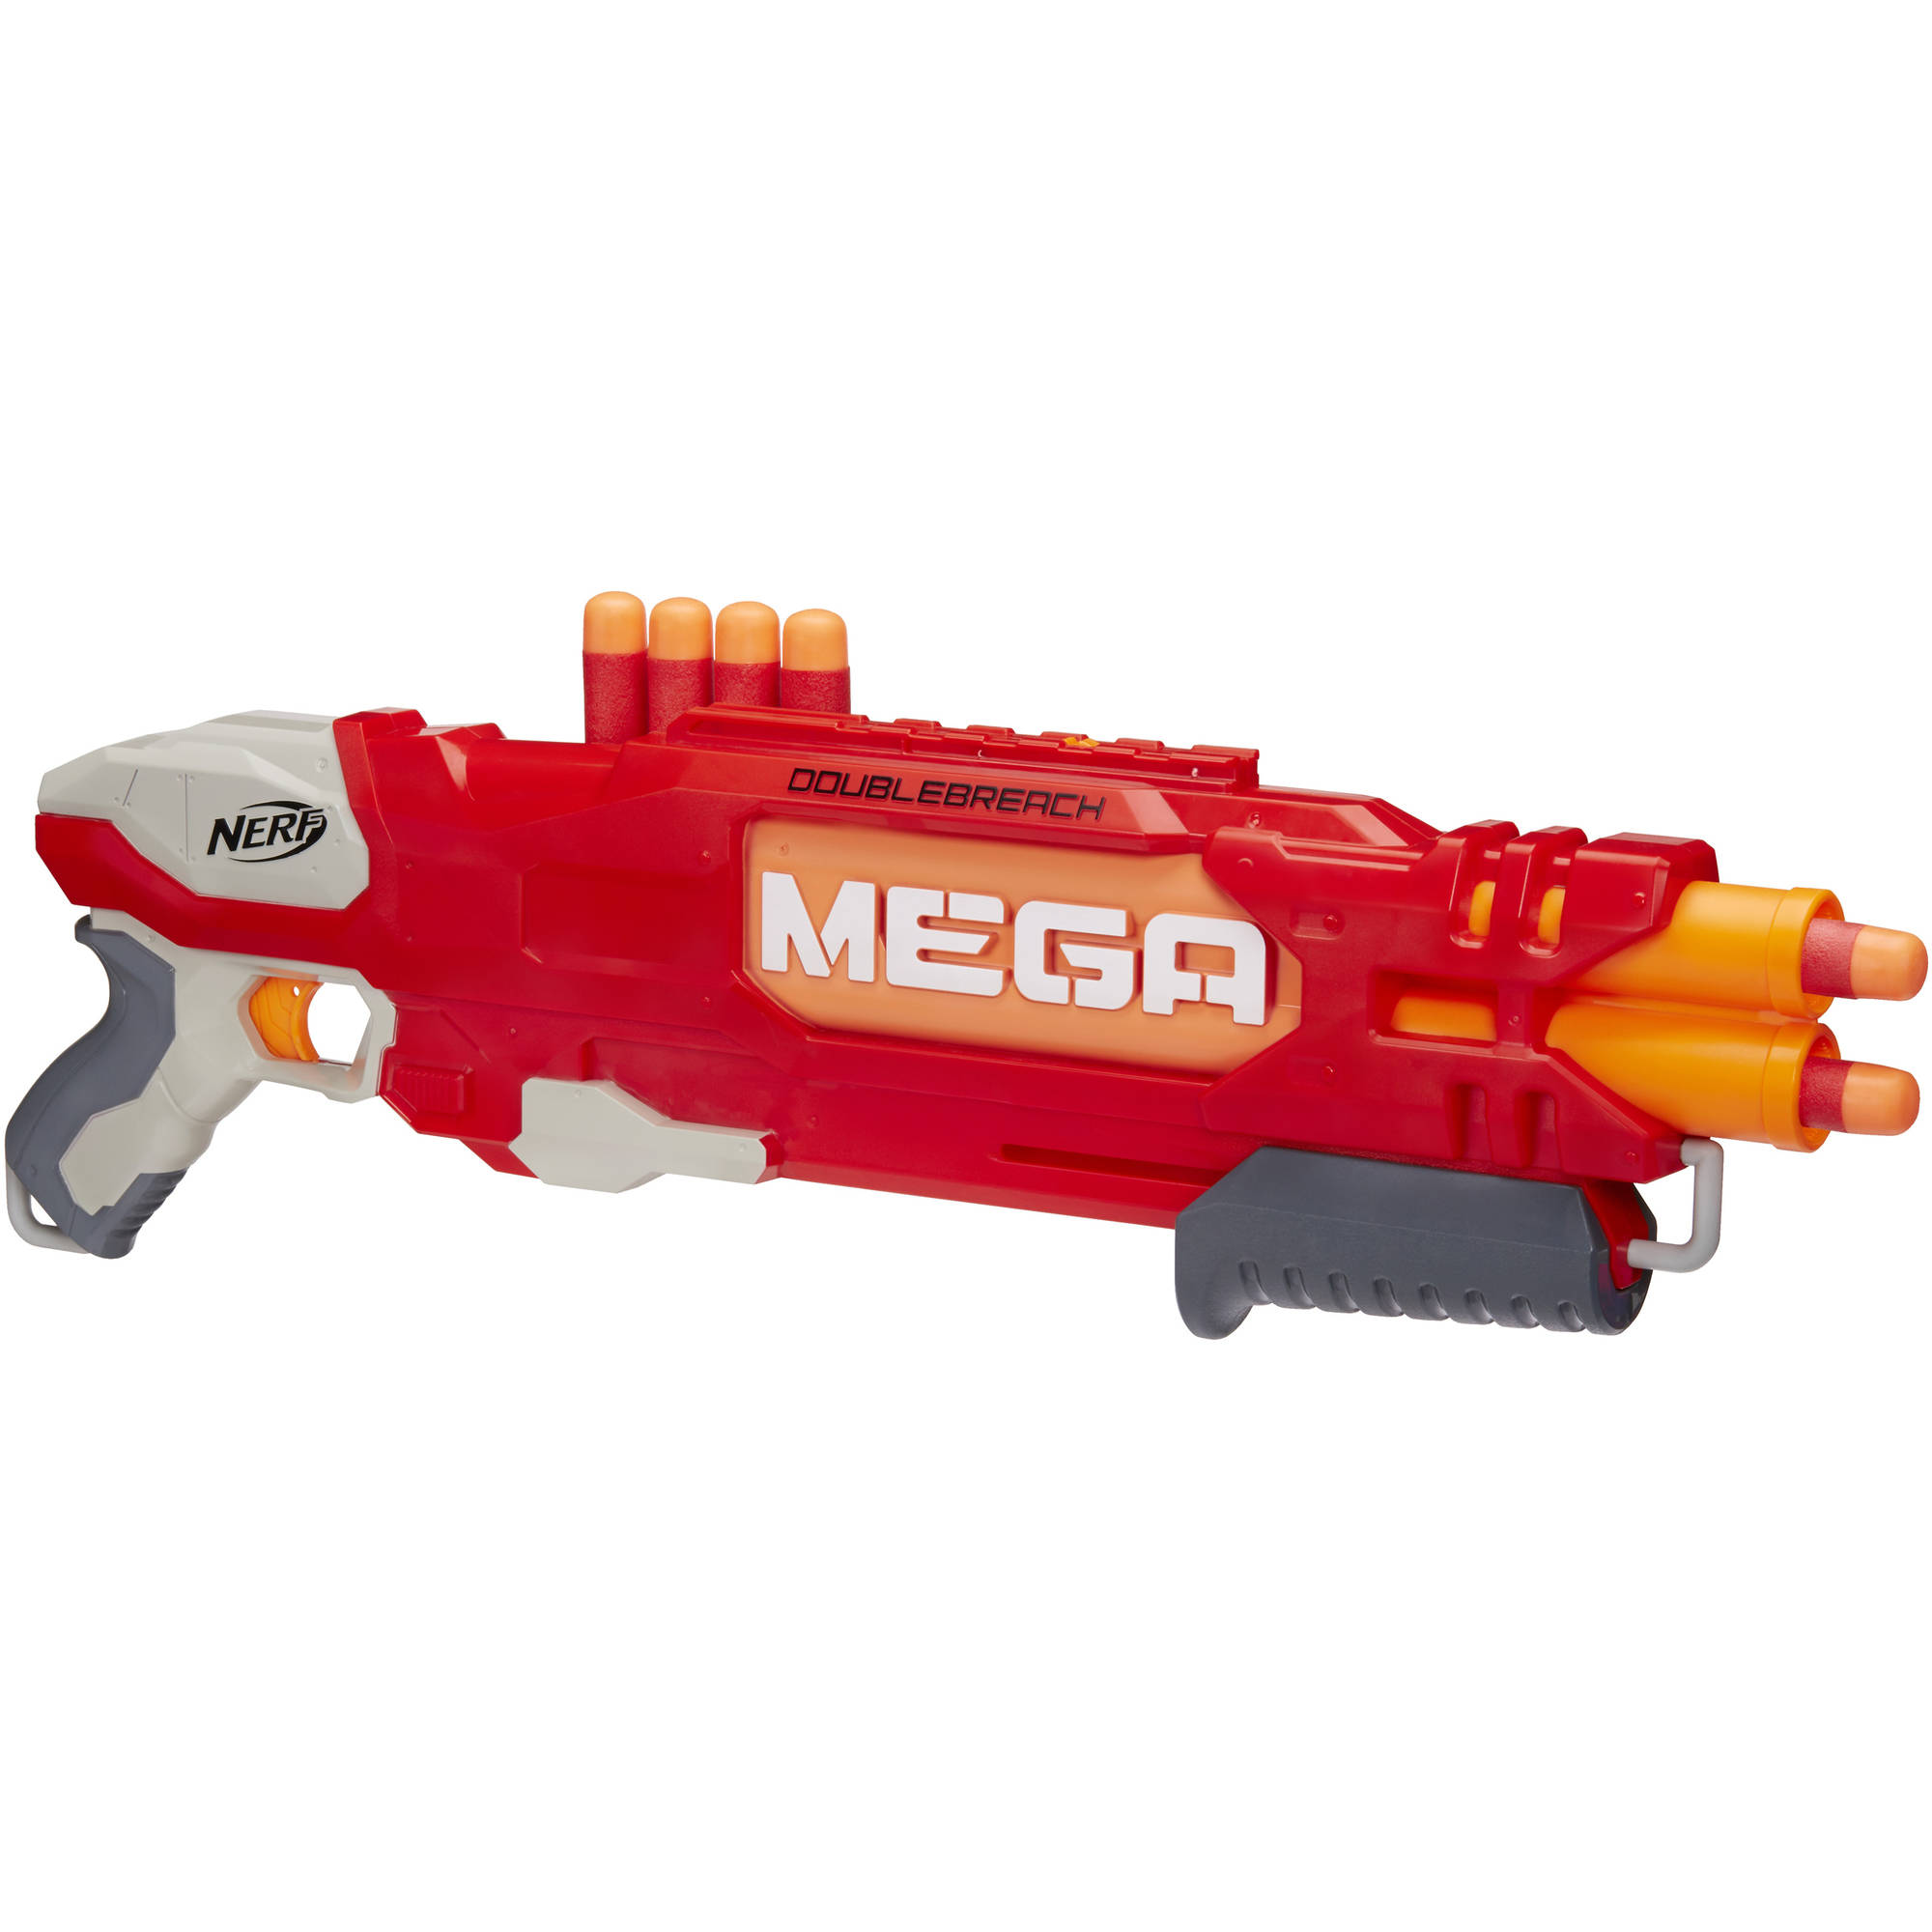 Doublebreach | Nerf Mega used in our Fortnite Parties